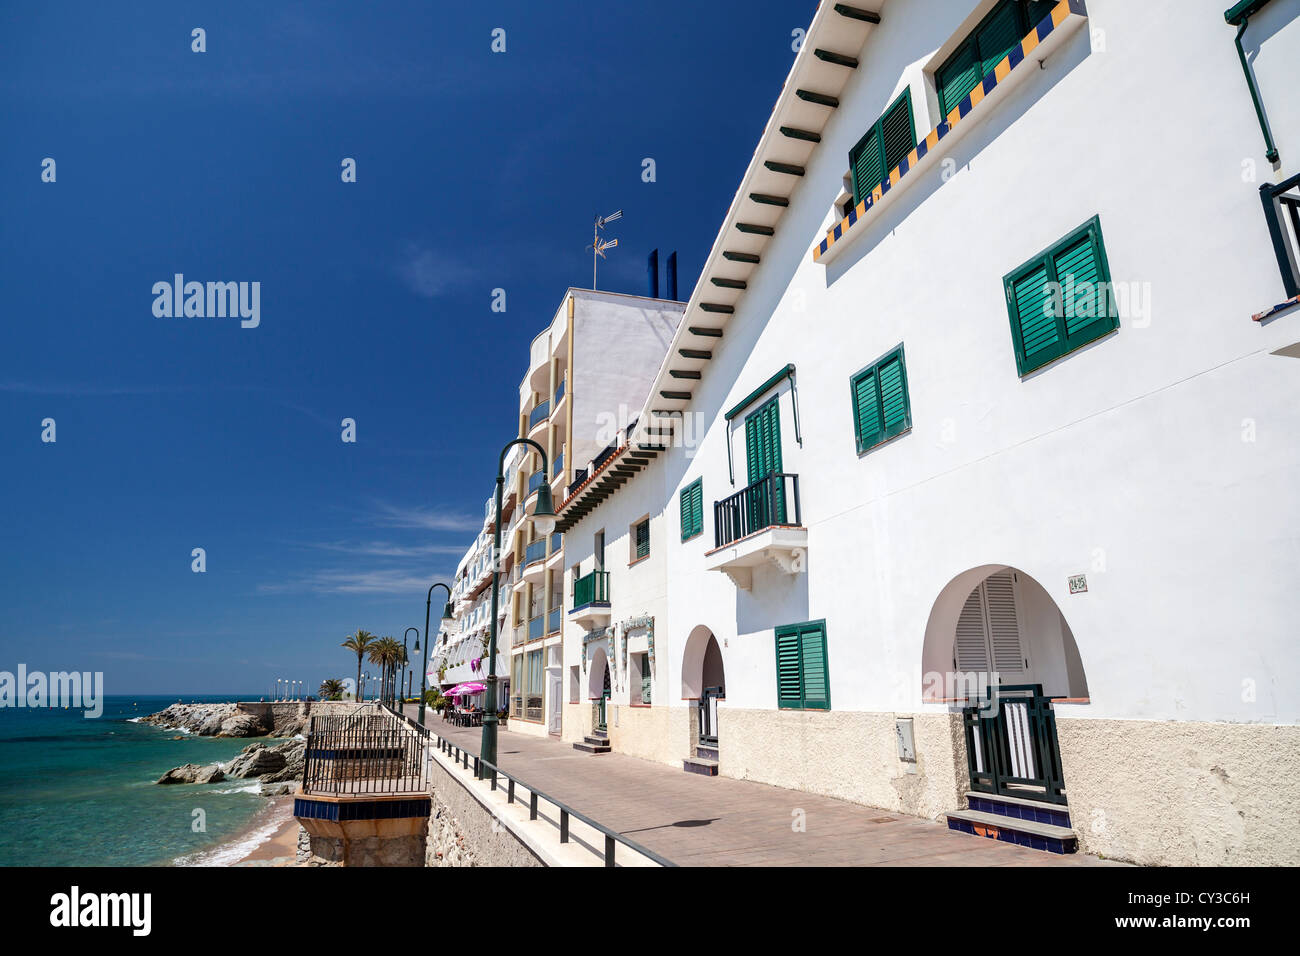 sant pol de mar,catalonia,spain.promenade. - Stock Image